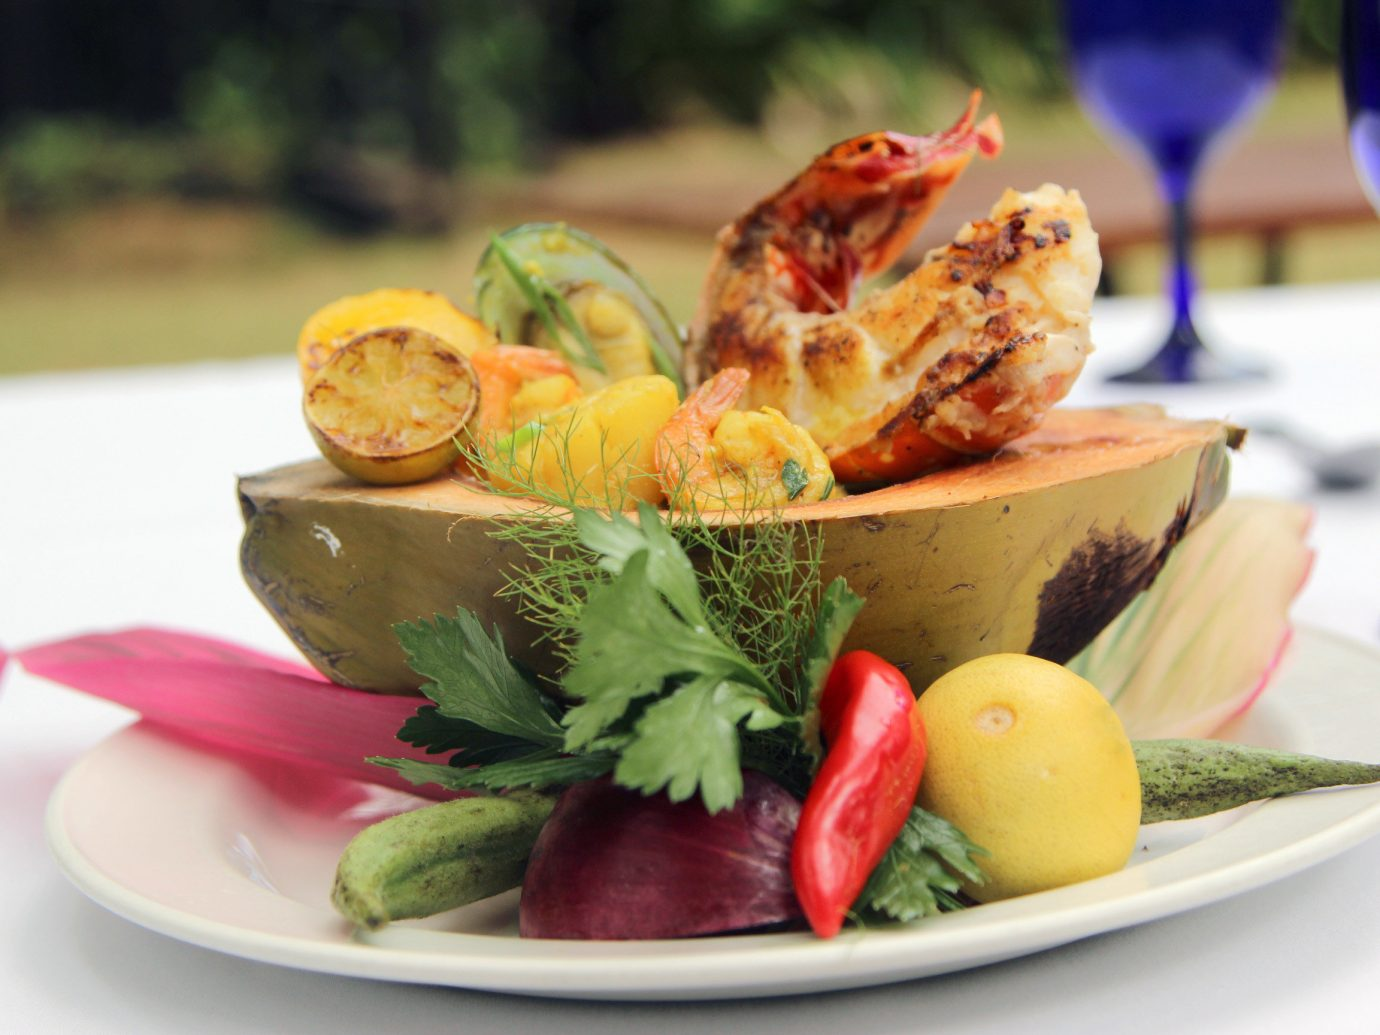 Hotels plate dish food meal produce hors d oeuvre Seafood cuisine sense vegetable lunch arranged fresh